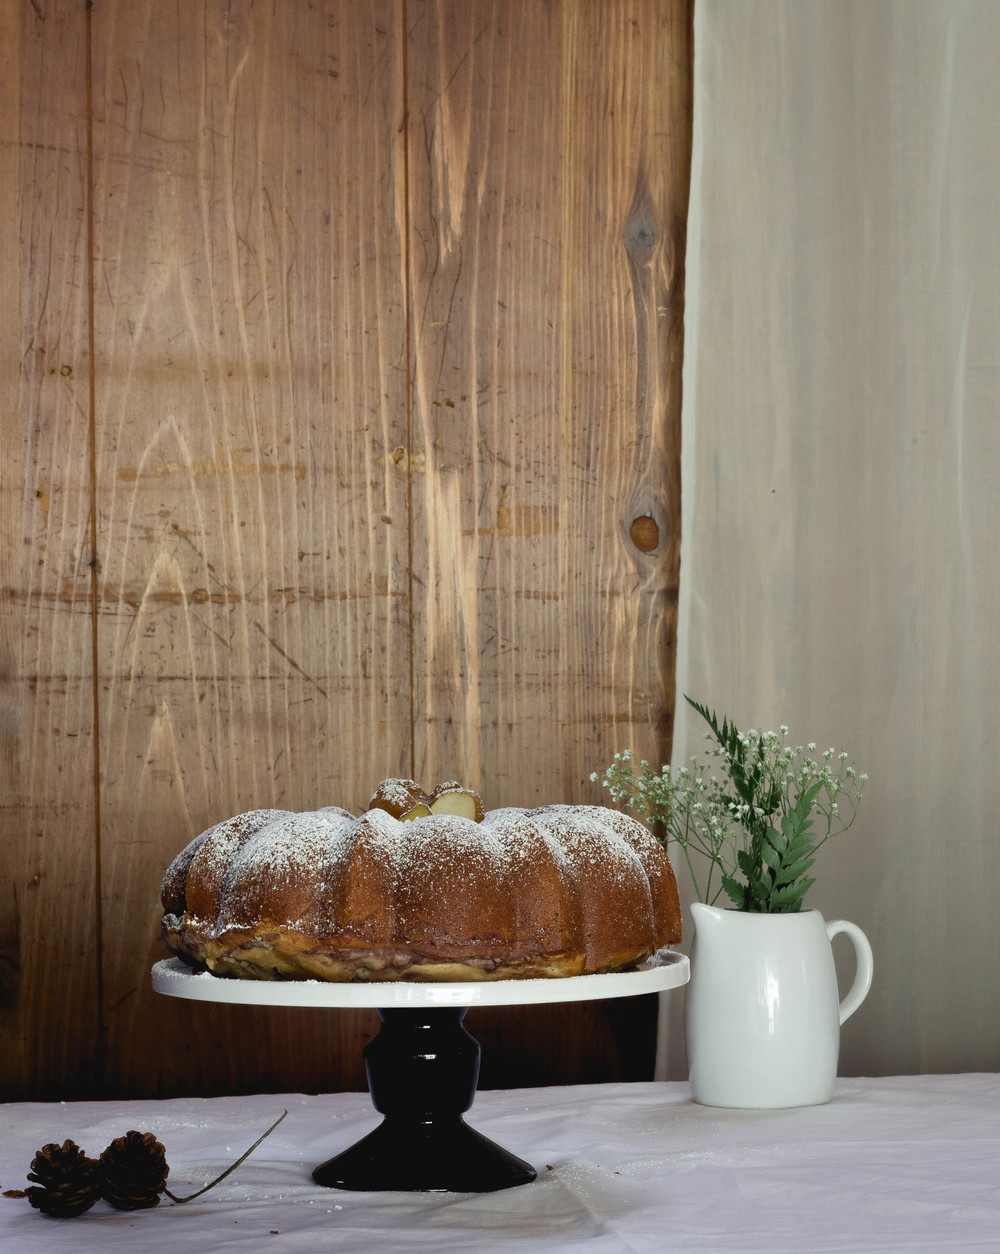 Mochi Red Bean Bundt Cake for Autumn | fit for the soul